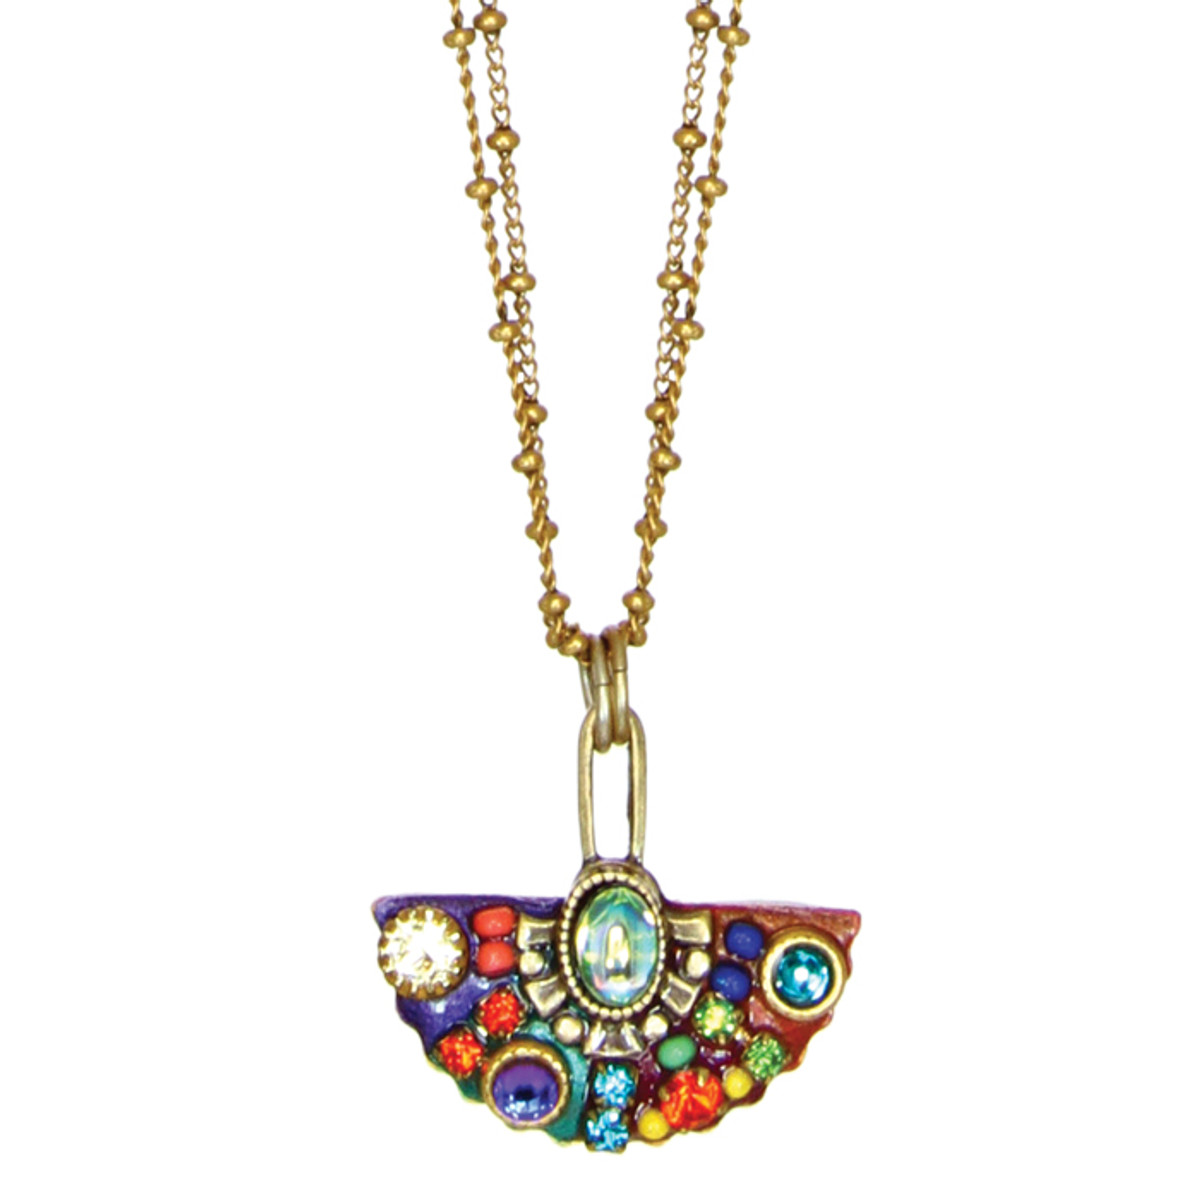 Michal Golan Necklace - Multibright Small Fan Pendant With Double Chains